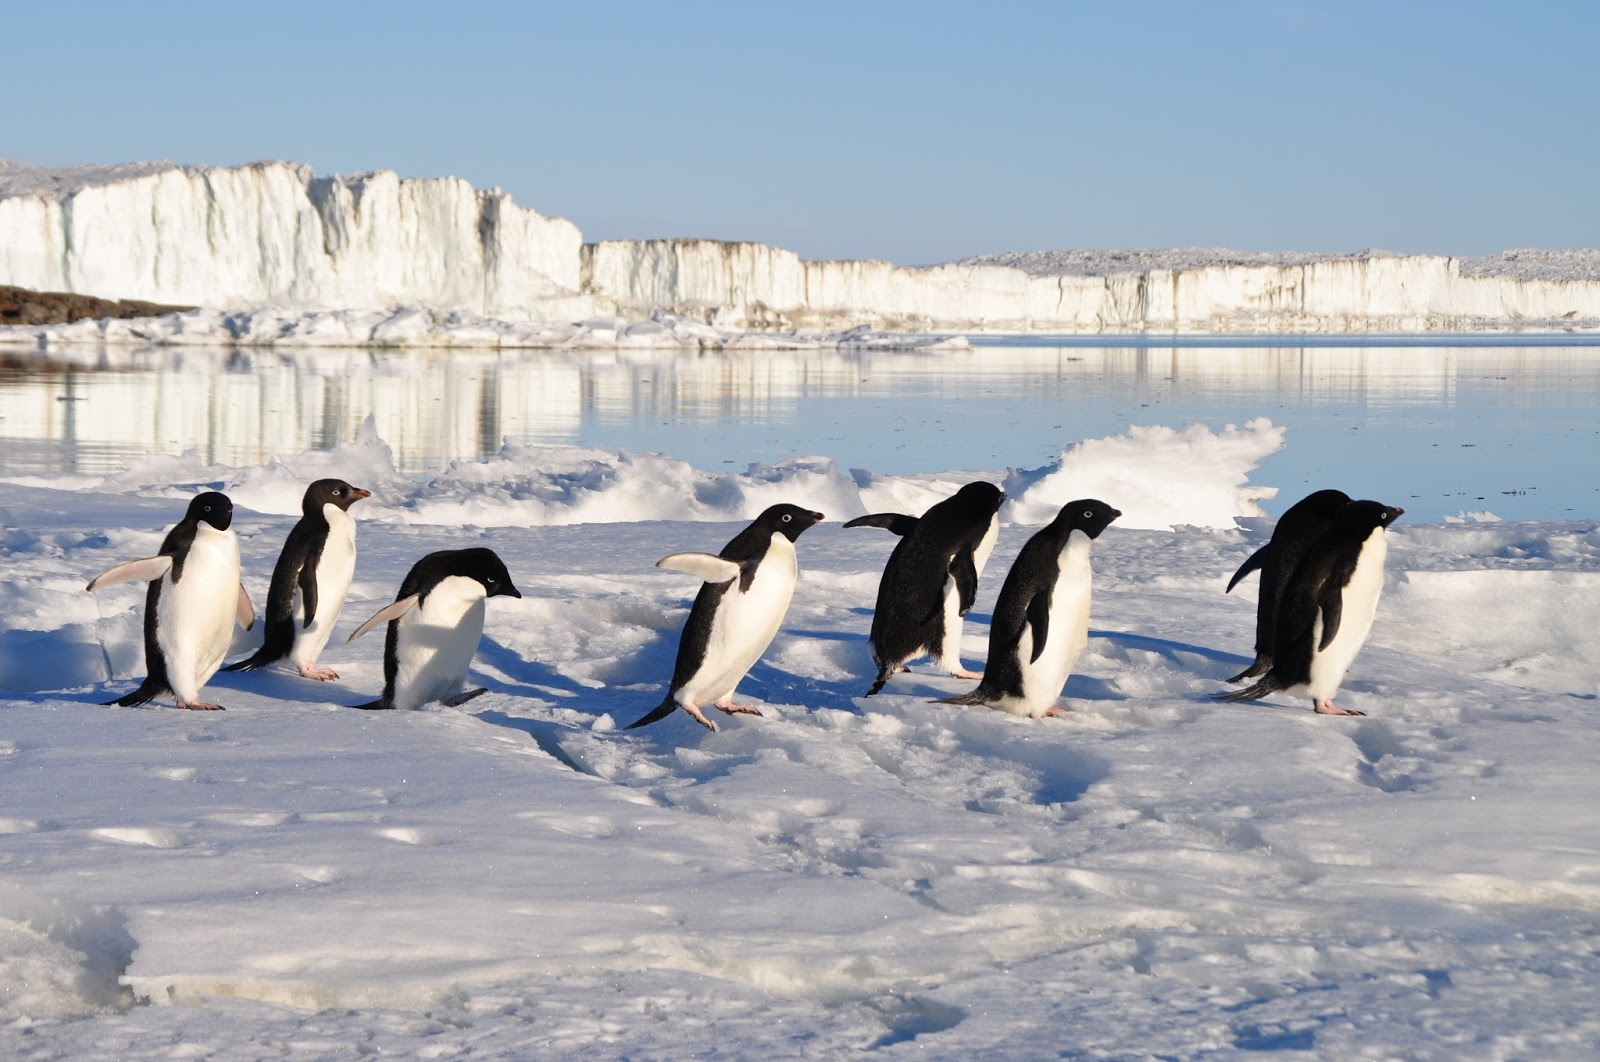 Picture of penguins walking in their natural tuxedo suits.